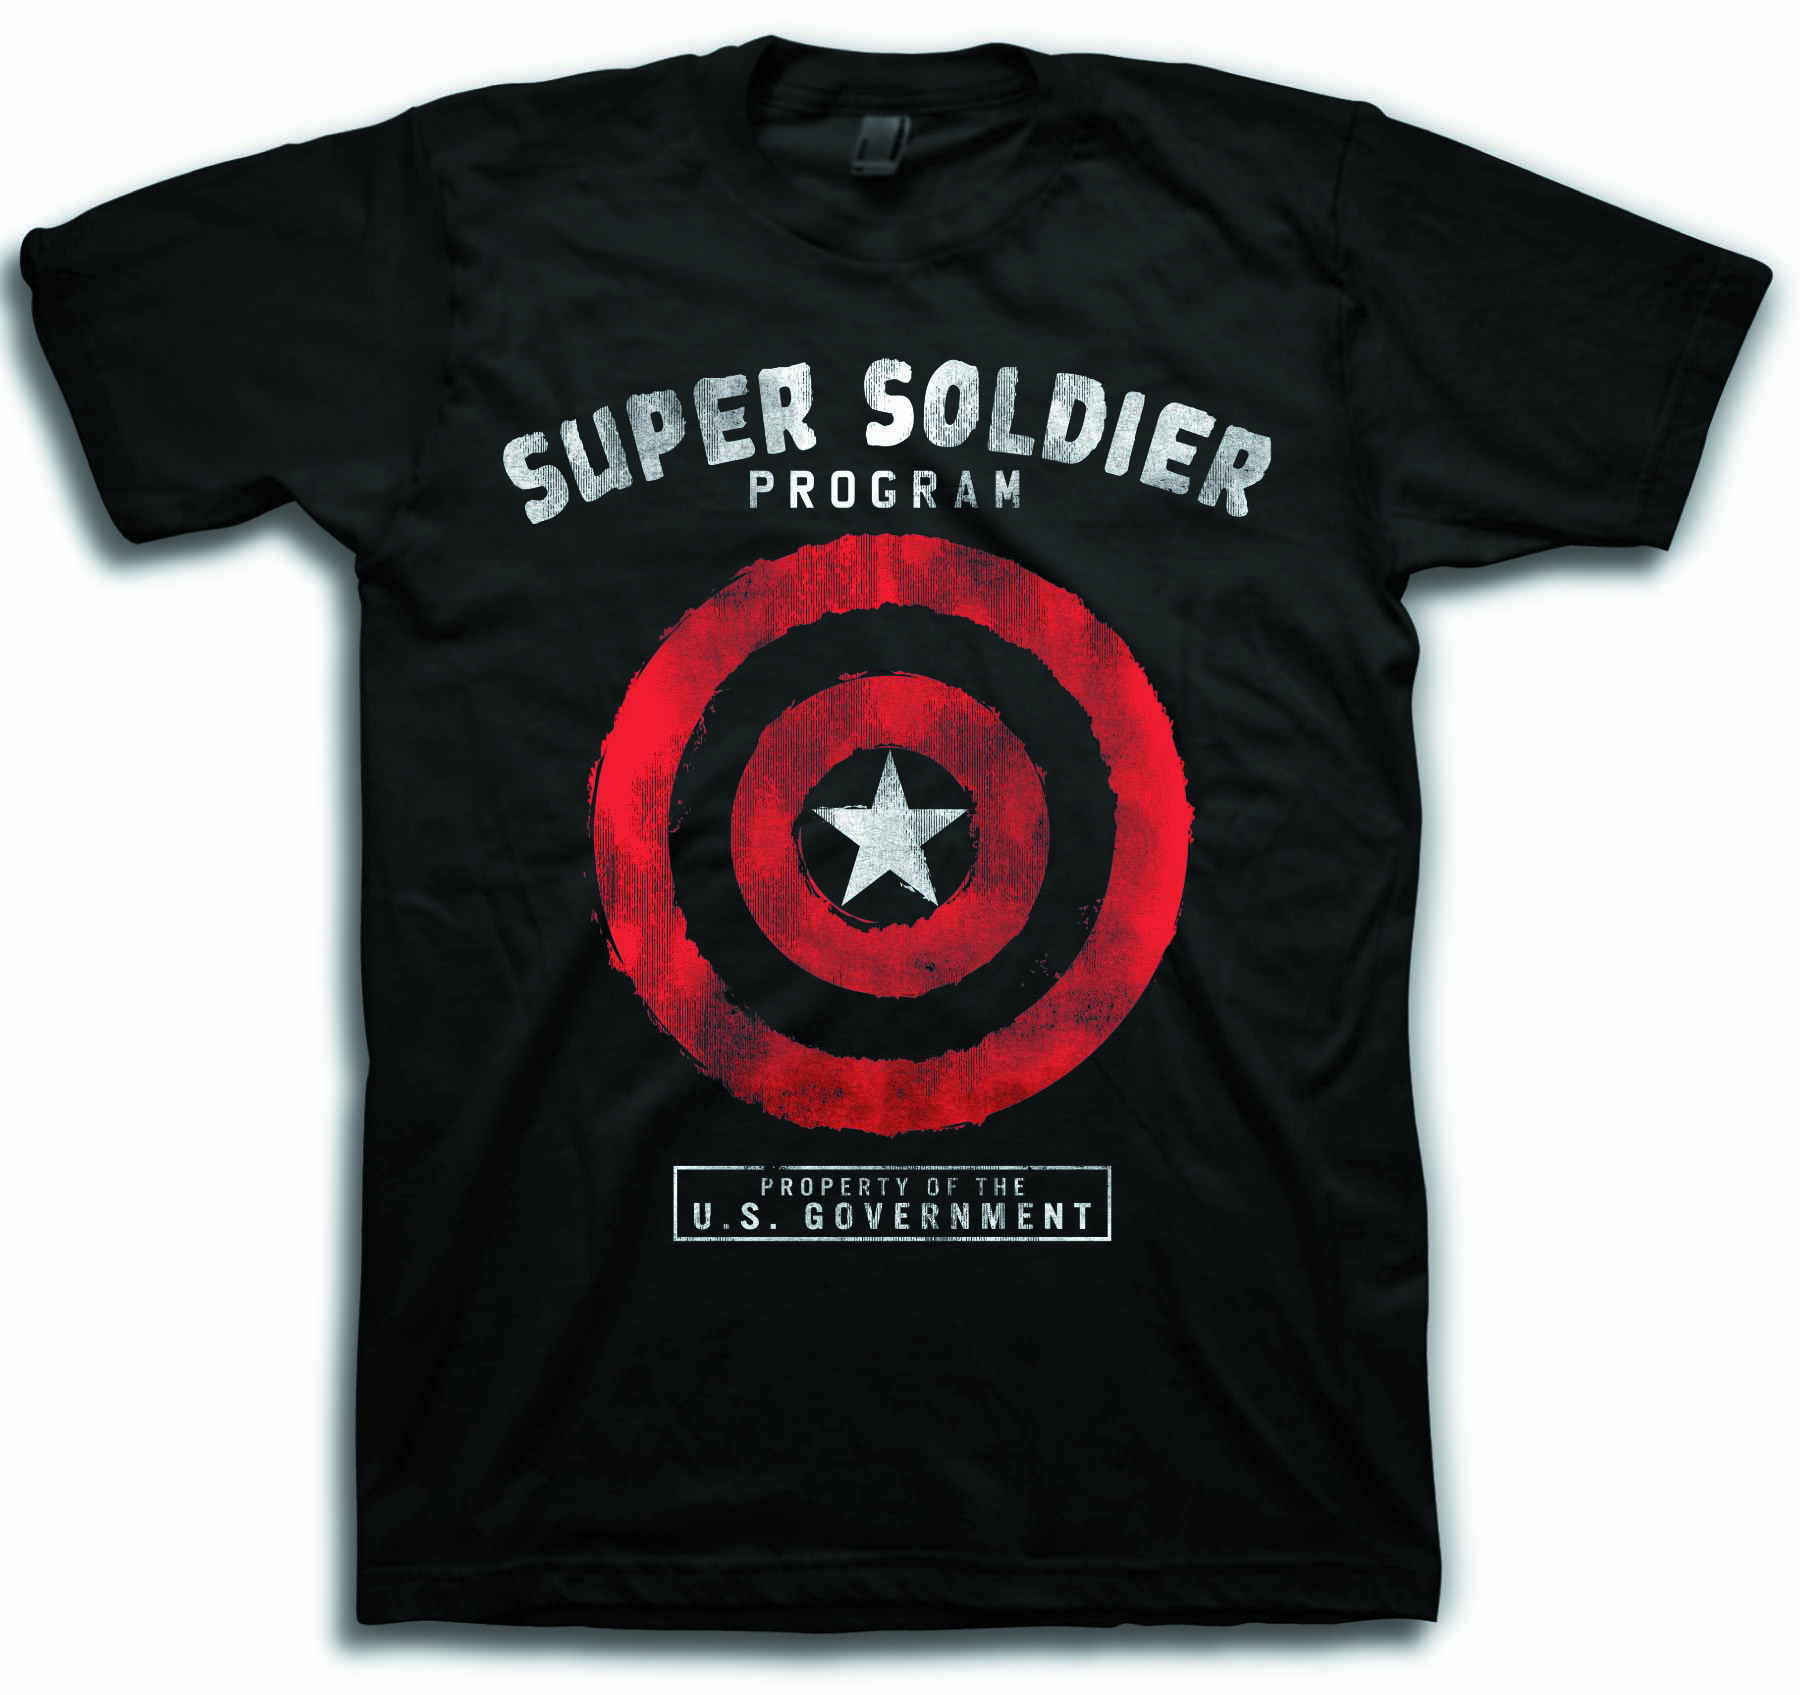 SUPER SOLDIER PROGRAM BLK T/S MED